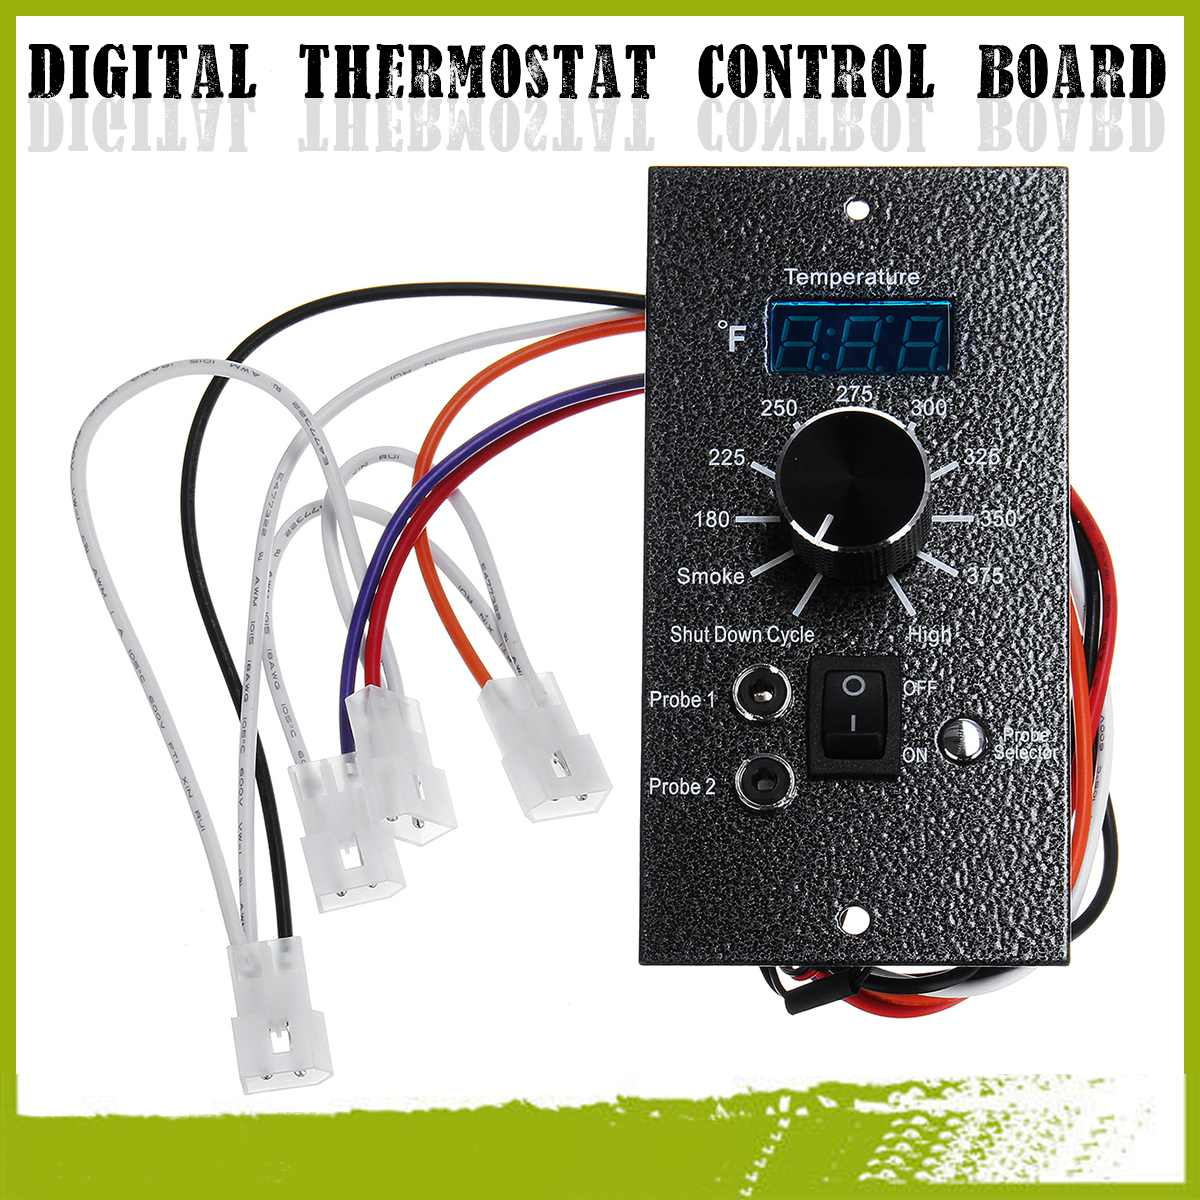 US $22 84 45% OFF|Upgrade Replacement 120V Digital Temperature Controller  Thermostat Board For For TRAEGER Pellet BBQ Grills Integrated Circuits-in